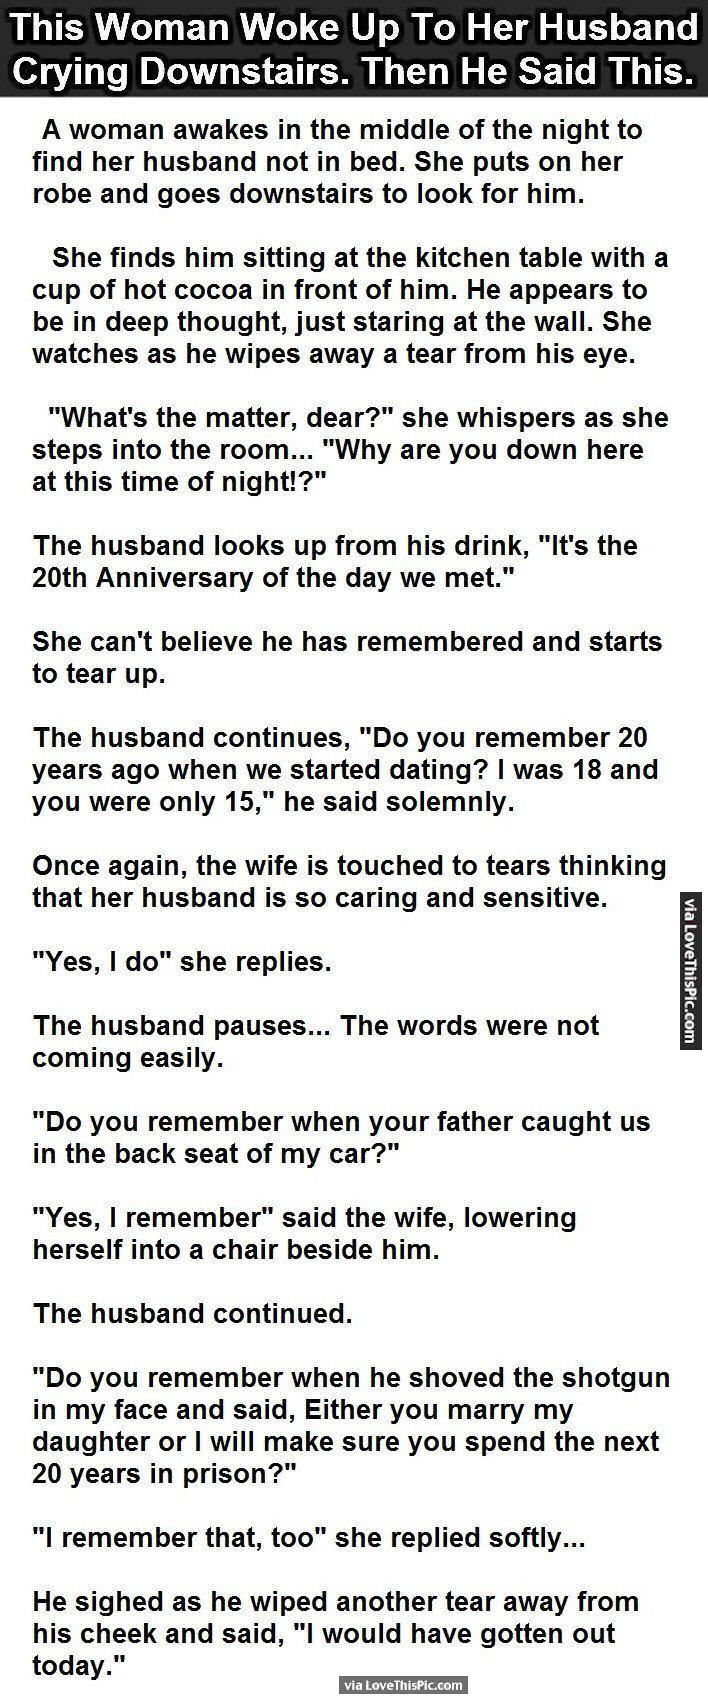 This Woman Woke Up To Her Husband Crying Downstairs. Then He Said This. funny jokes story lol funny quote funny quotes funny sayings joke hilarious humor stories marriage humor funny jokes best jokes ever best jokes